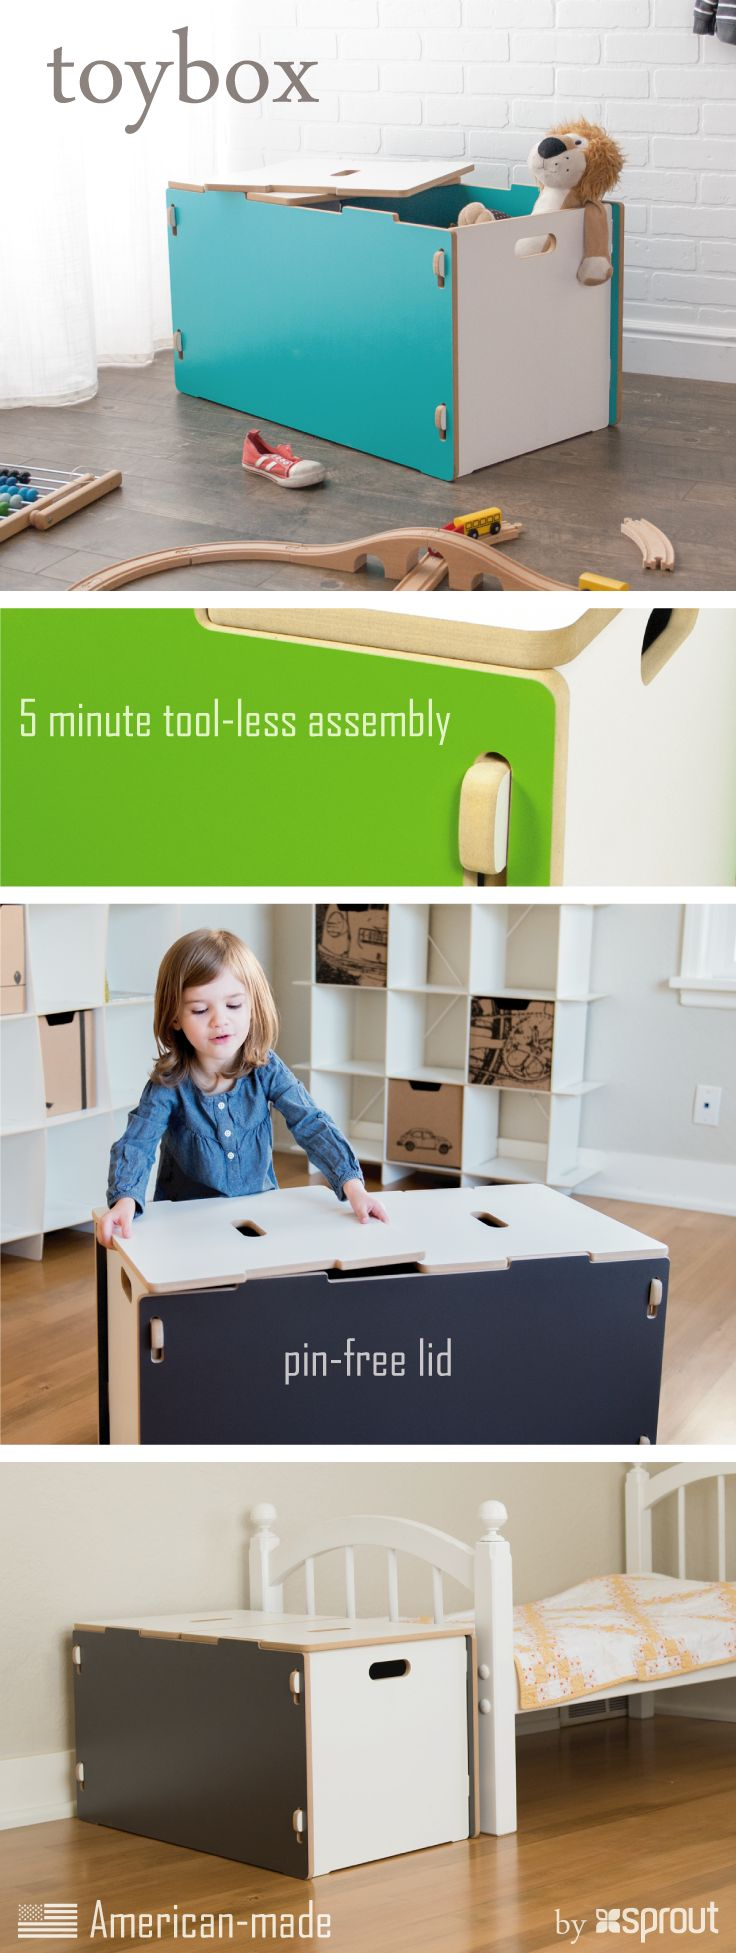 Modern Toy Box Living Room: Best 25+ Kids Toy Boxes Ideas On Pinterest